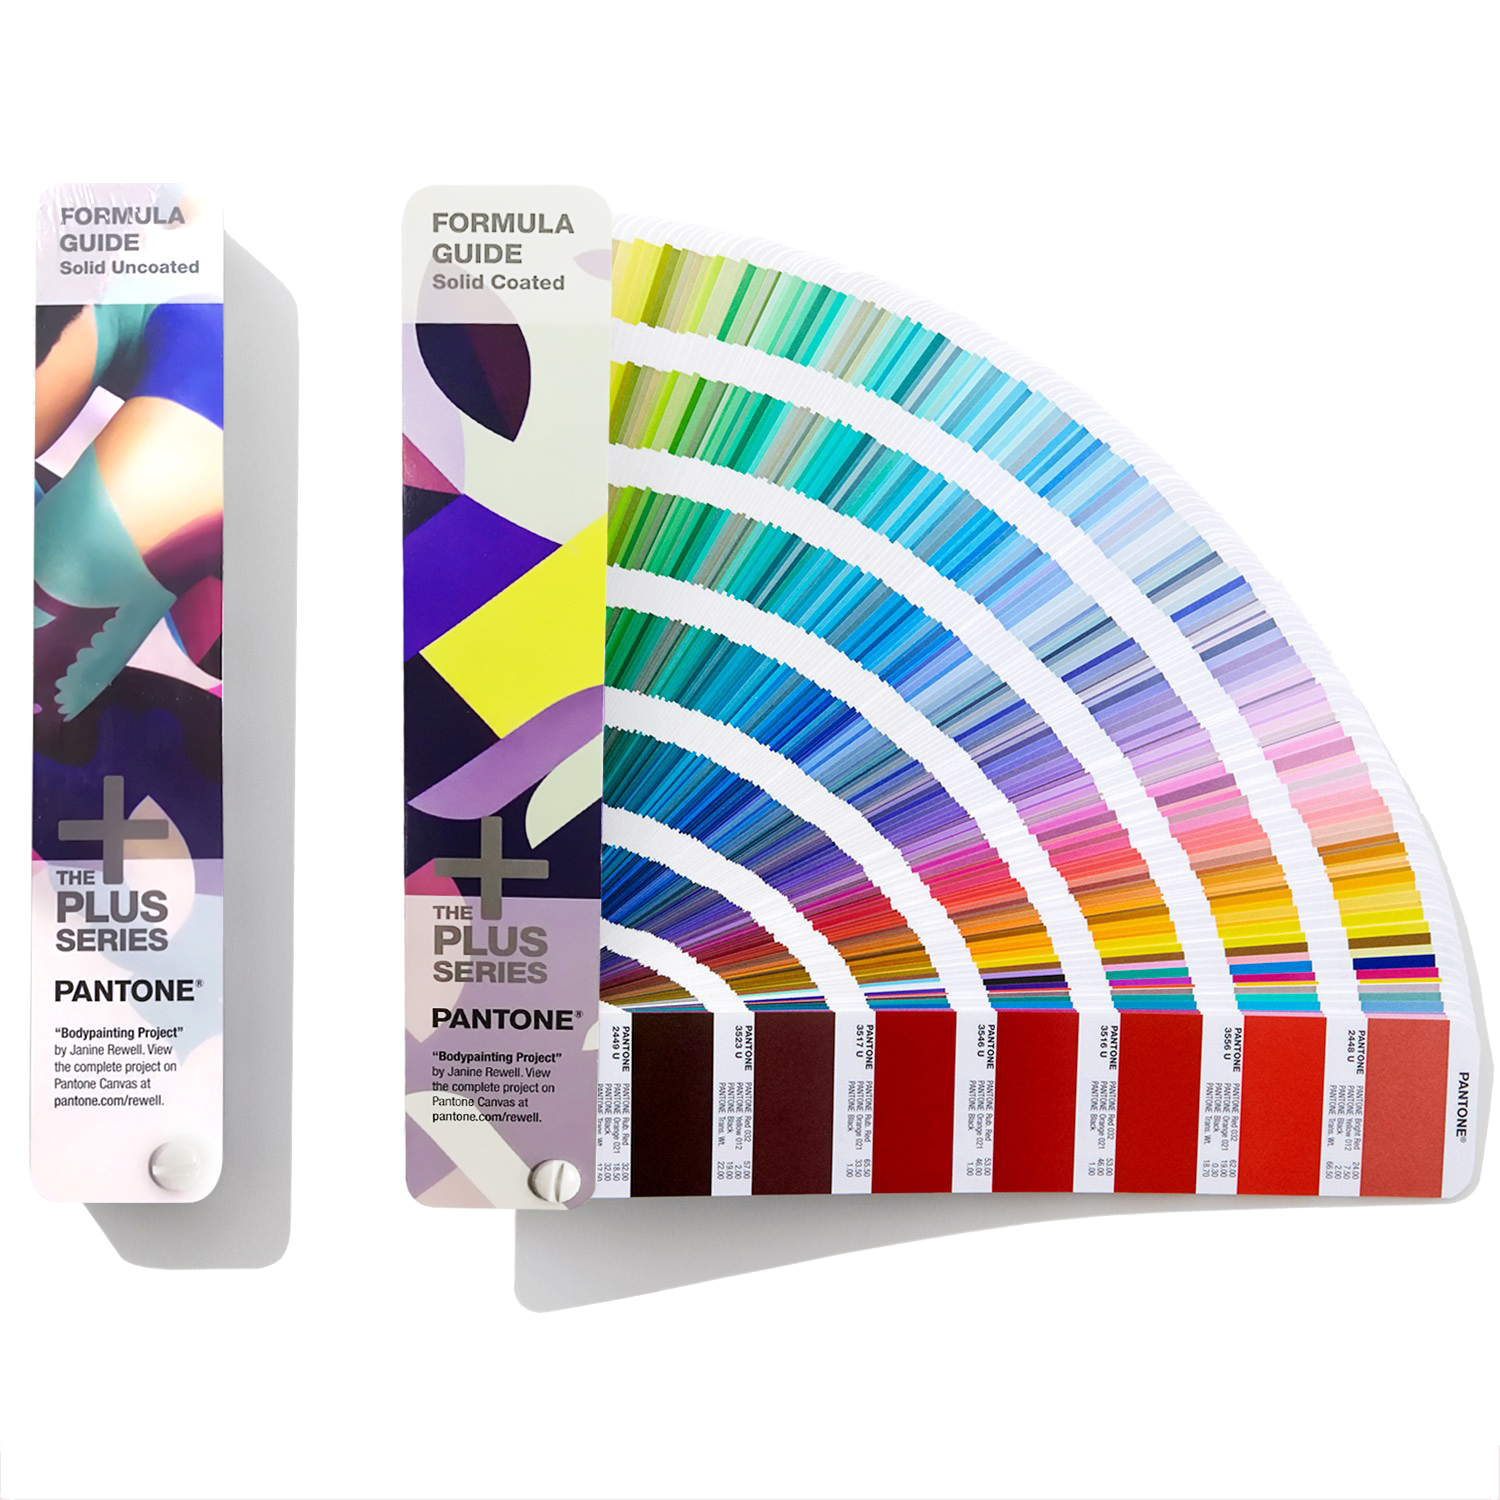 Pantone solid uncoated color chart images chart design ideas pantone colour chart be safe and be seen clearly amongst vehicle and human movements comes in geenschuldenfo Choice Image